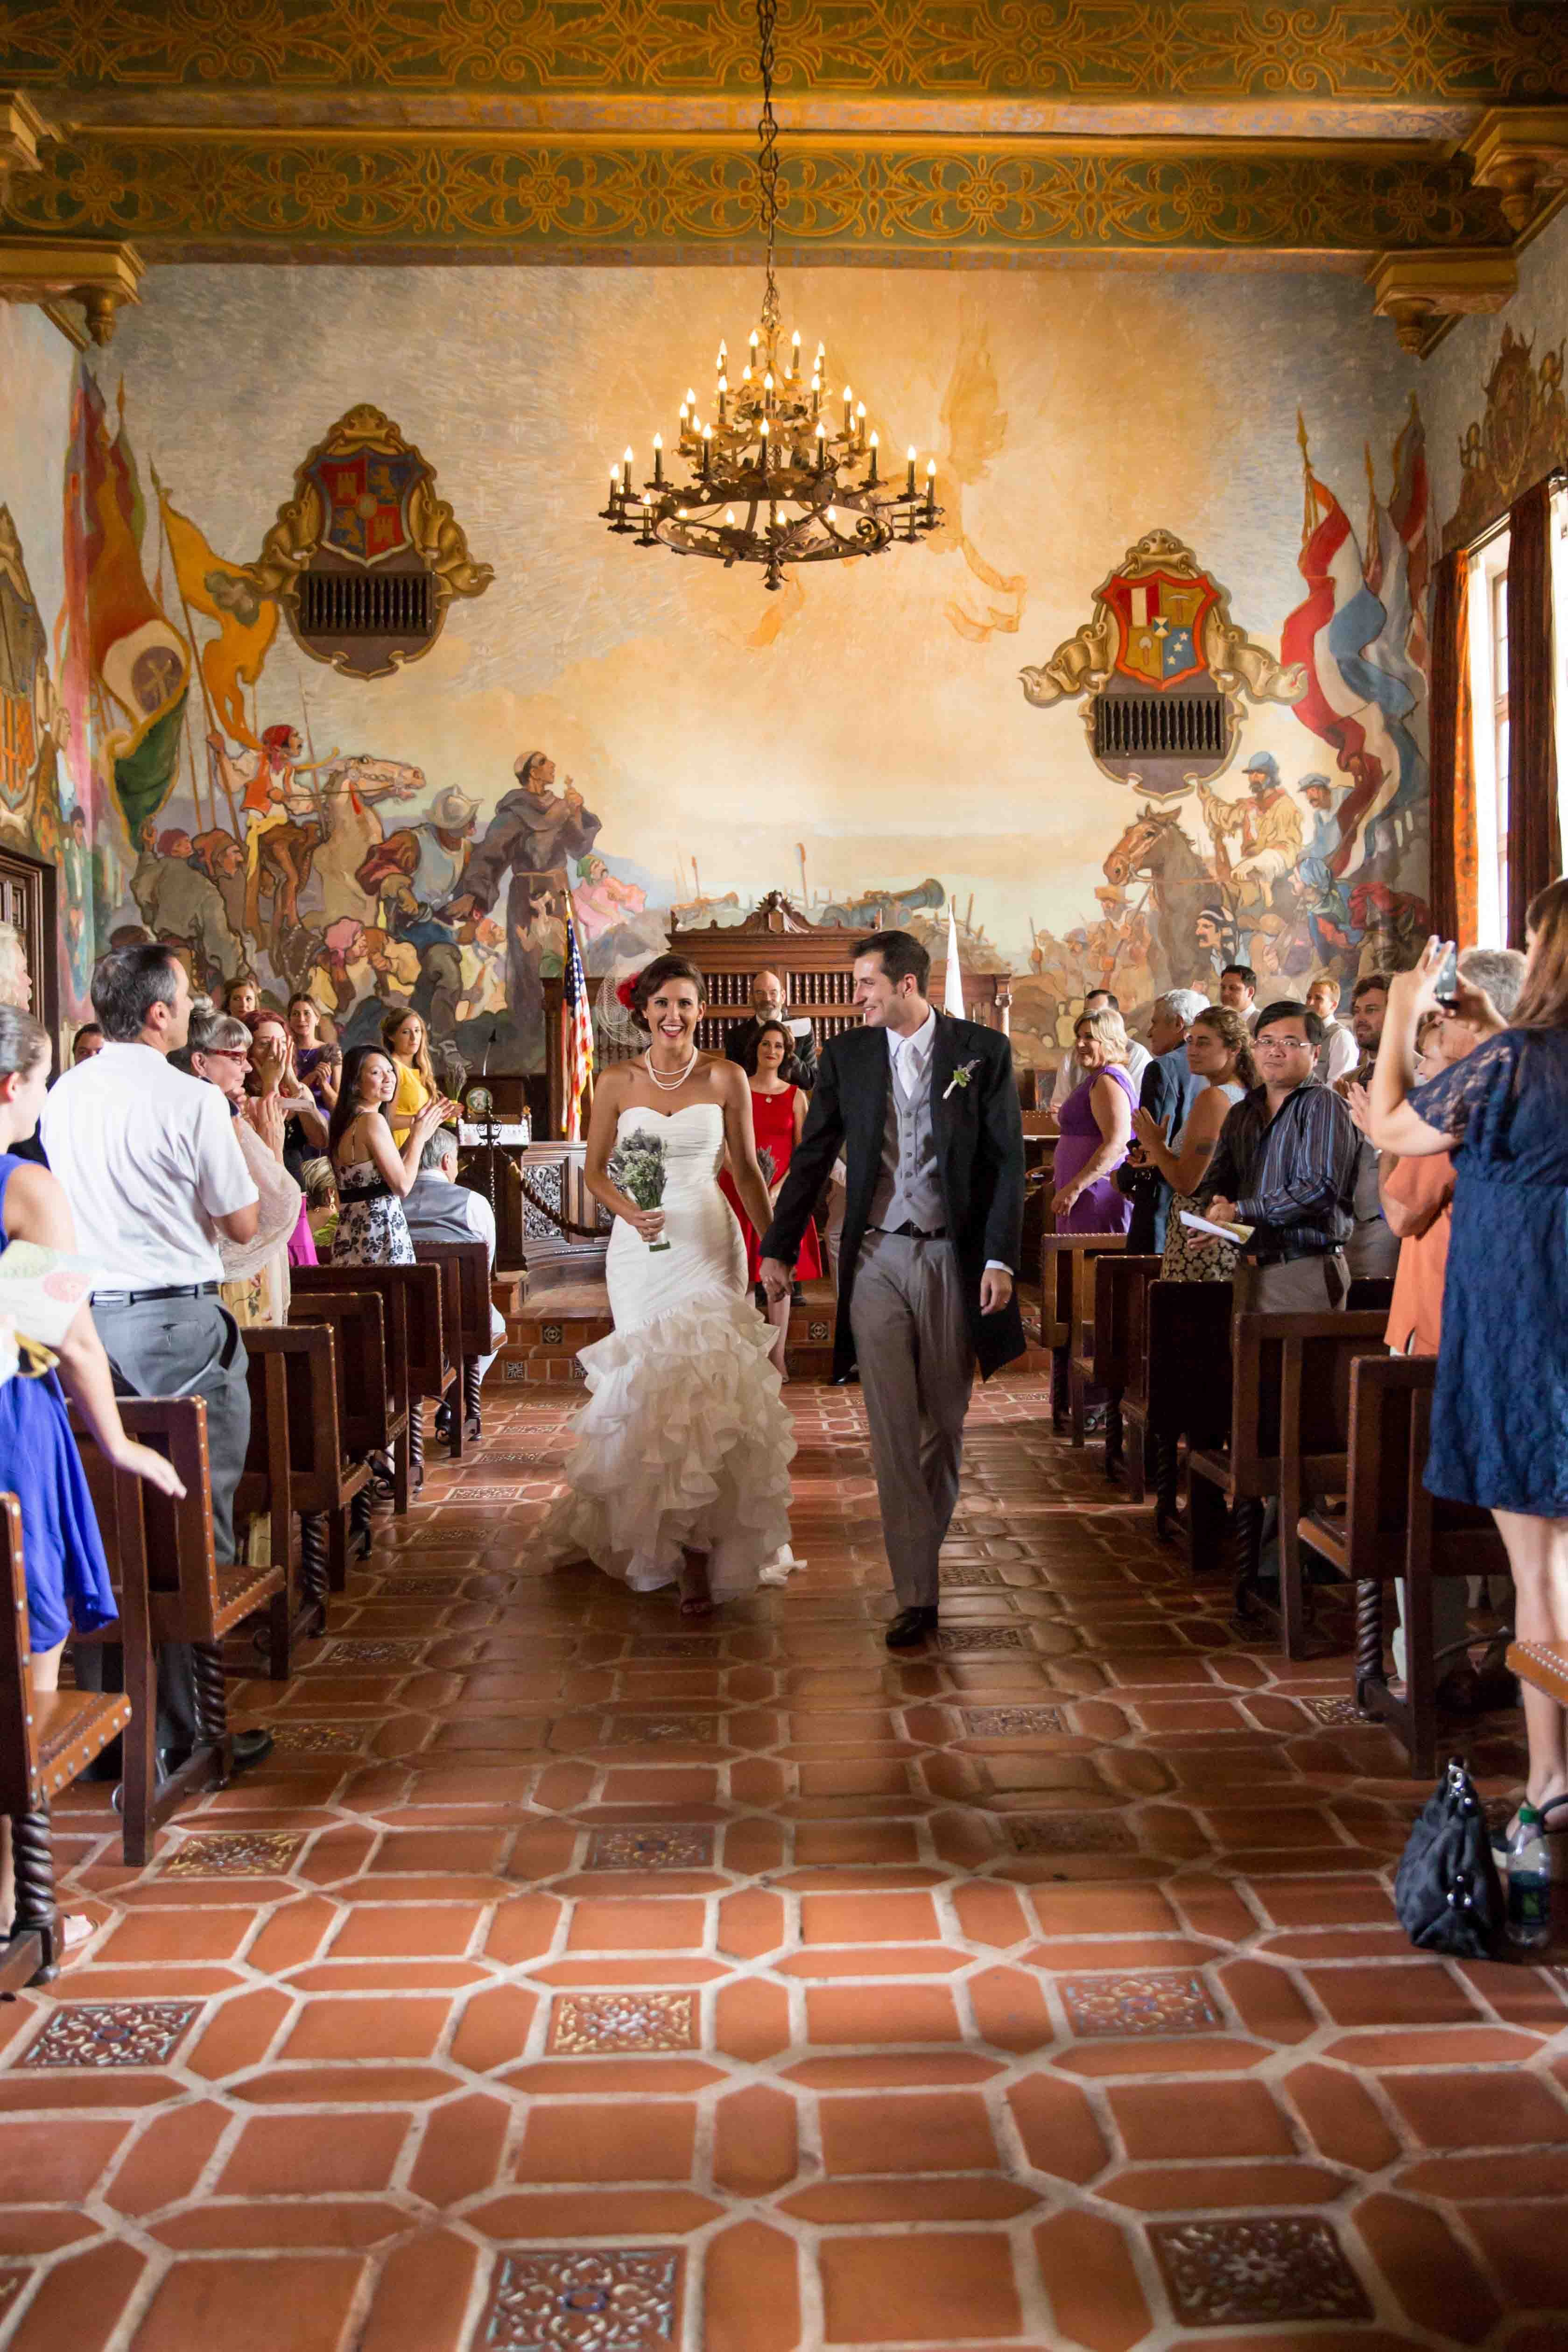 Santa barbara courthouse mural room wedding karen d for Mural room santa barbara courthouse